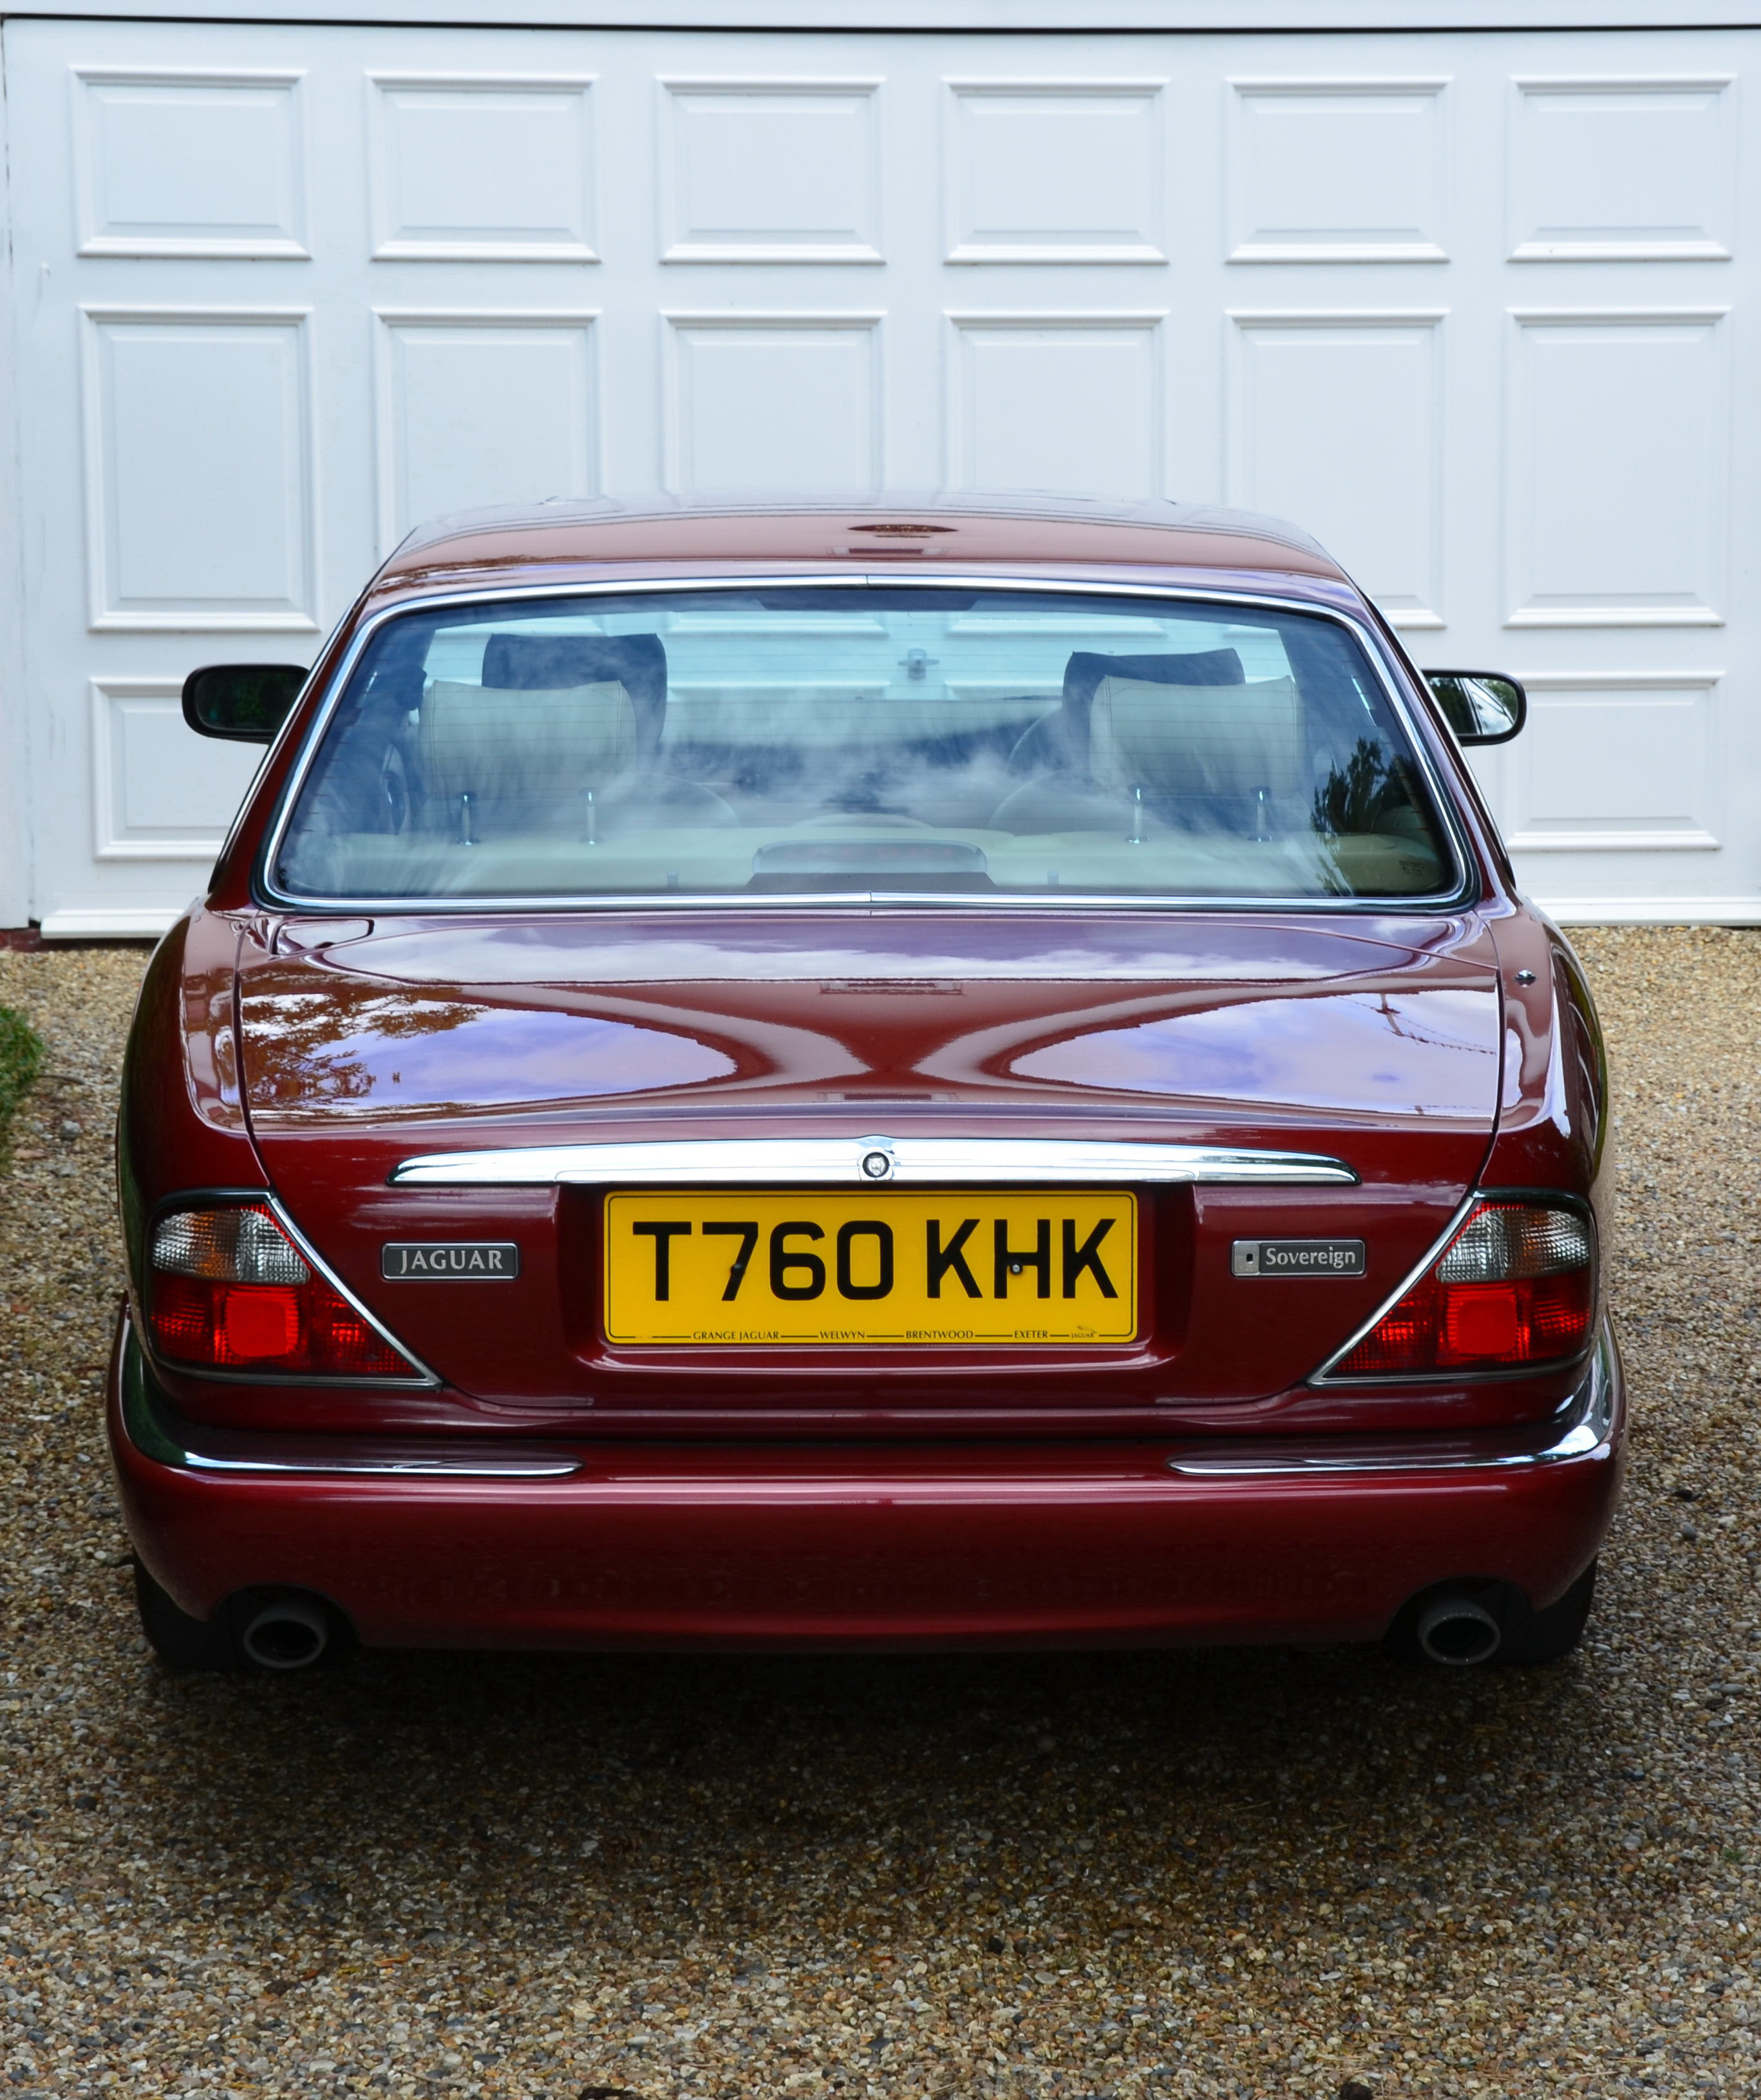 JAGUAR SOVEREIGN SWB 4.0 V8 Carnival Red With Cashmere